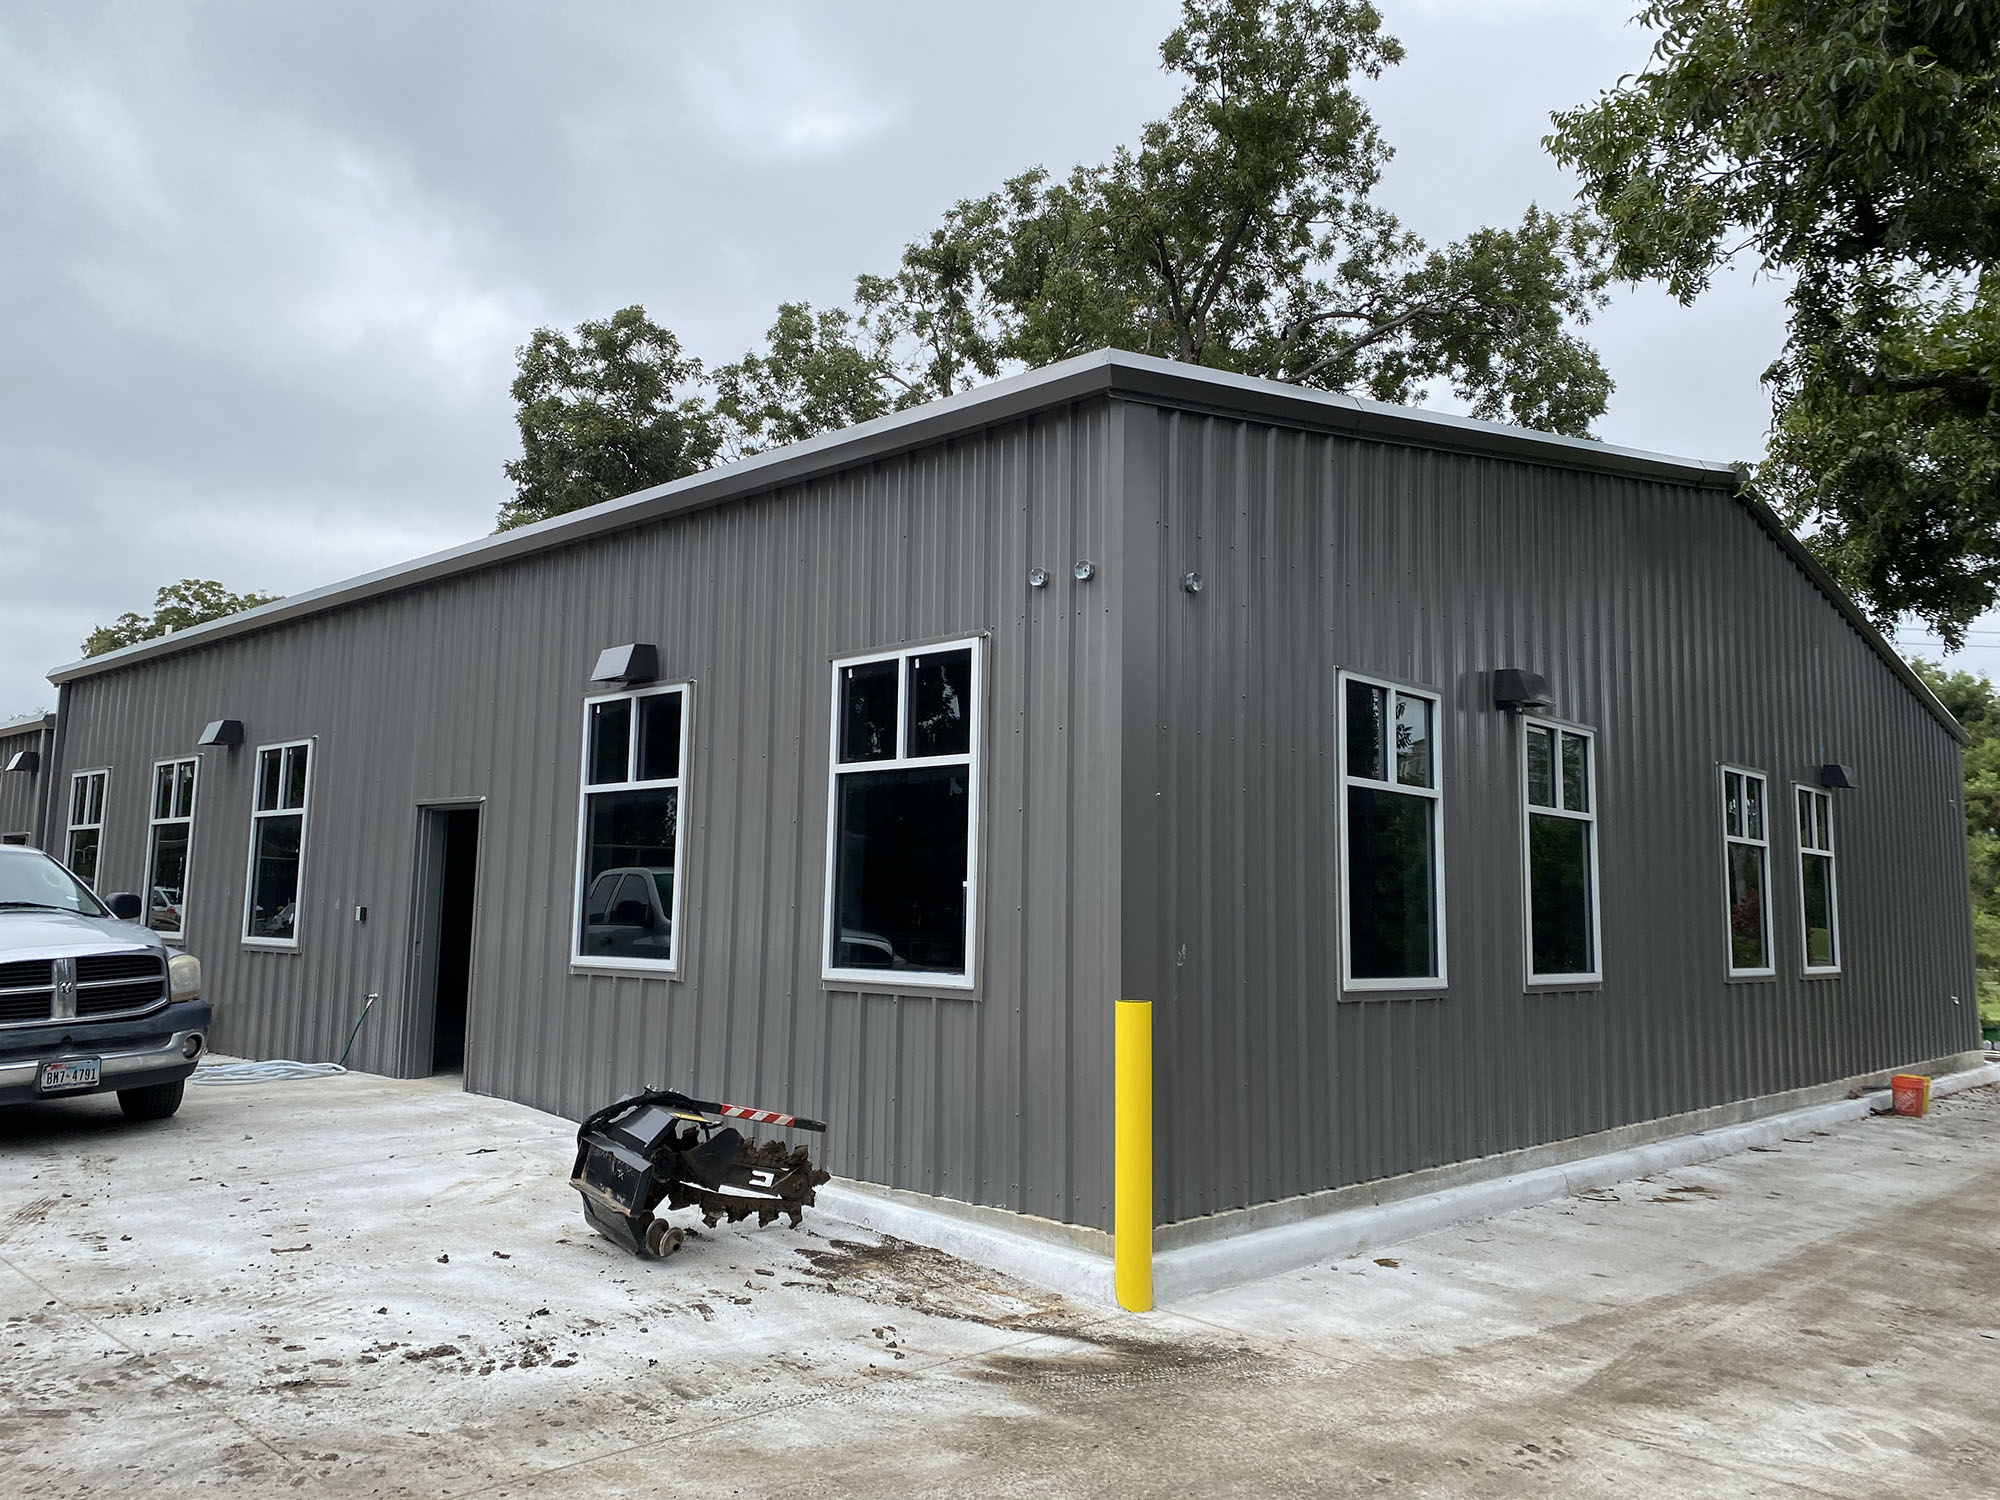 Royal Oaks Maintenance Facility Progress